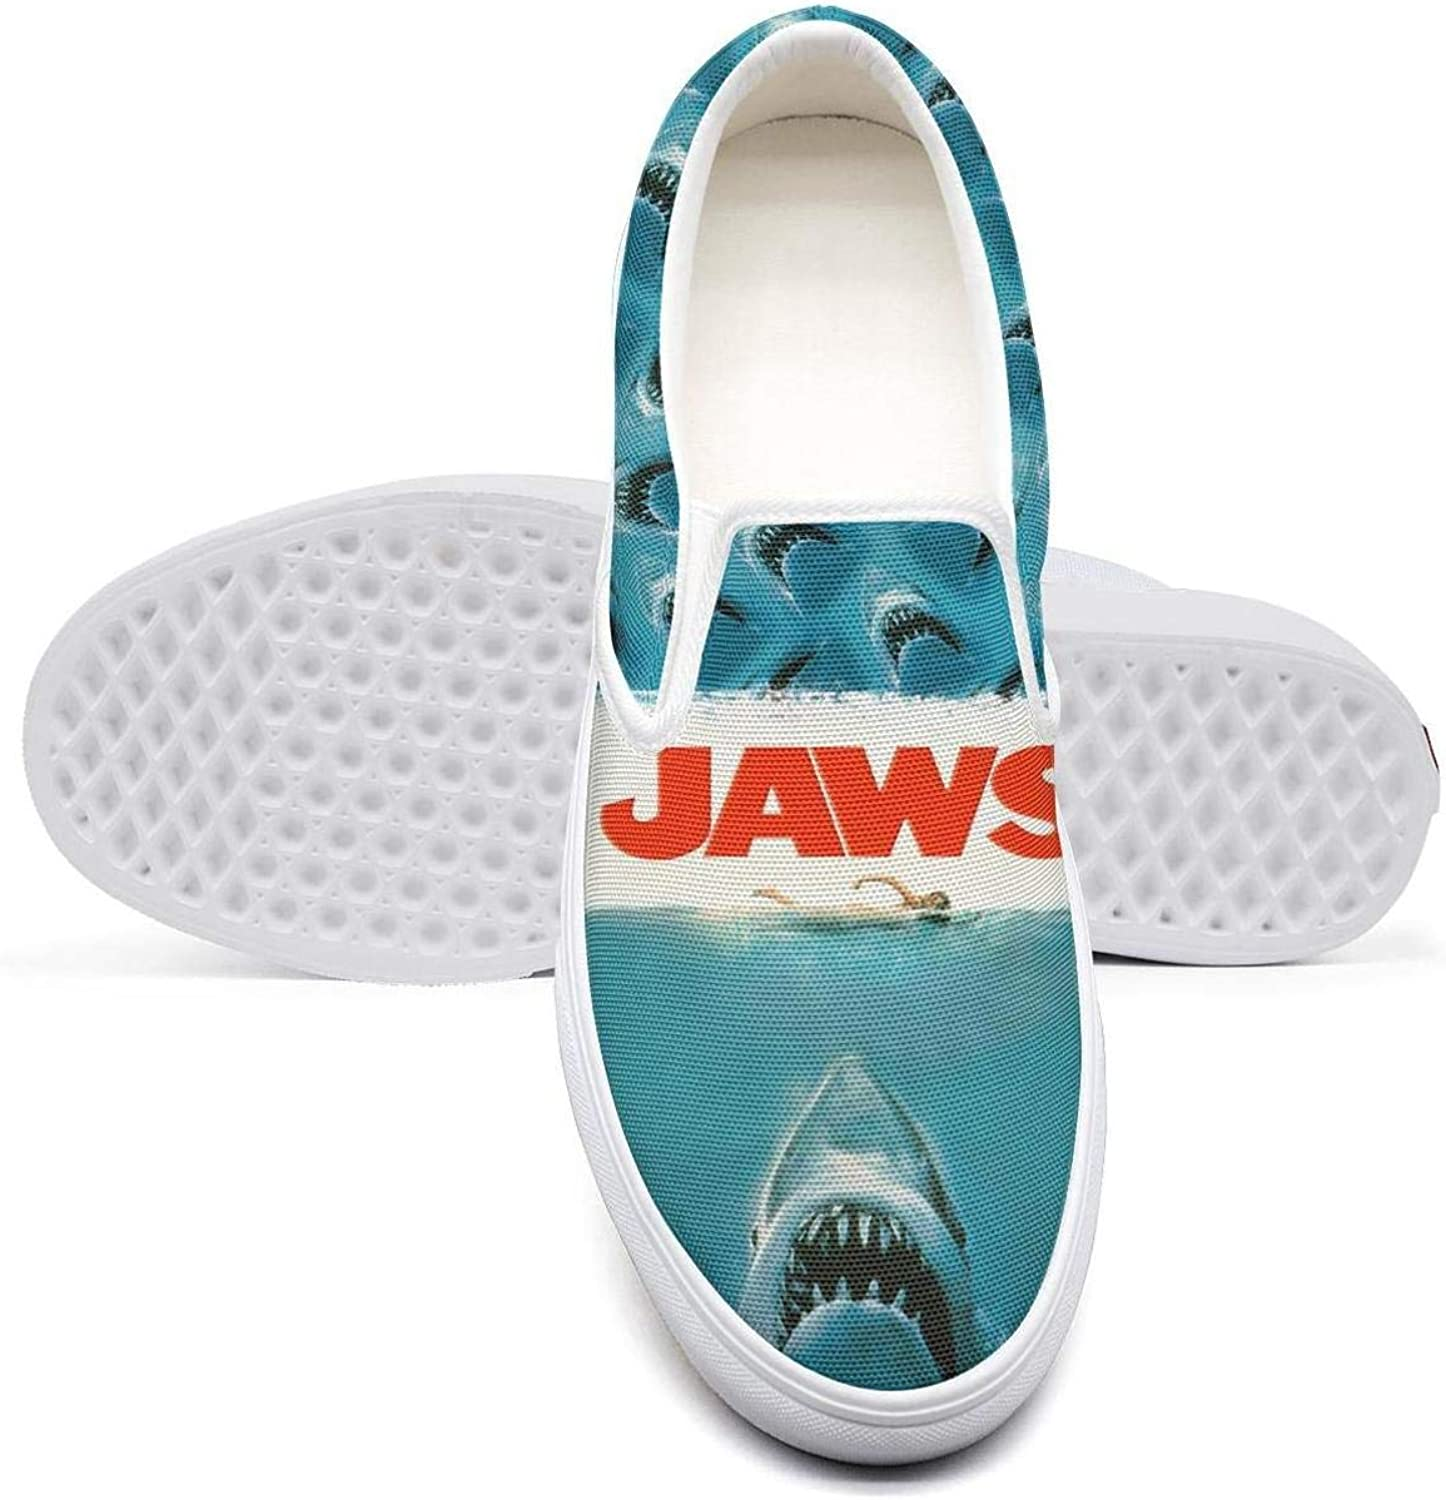 Movie Jaws Poster College Student Classic Canvas Sneakers Unique Runners